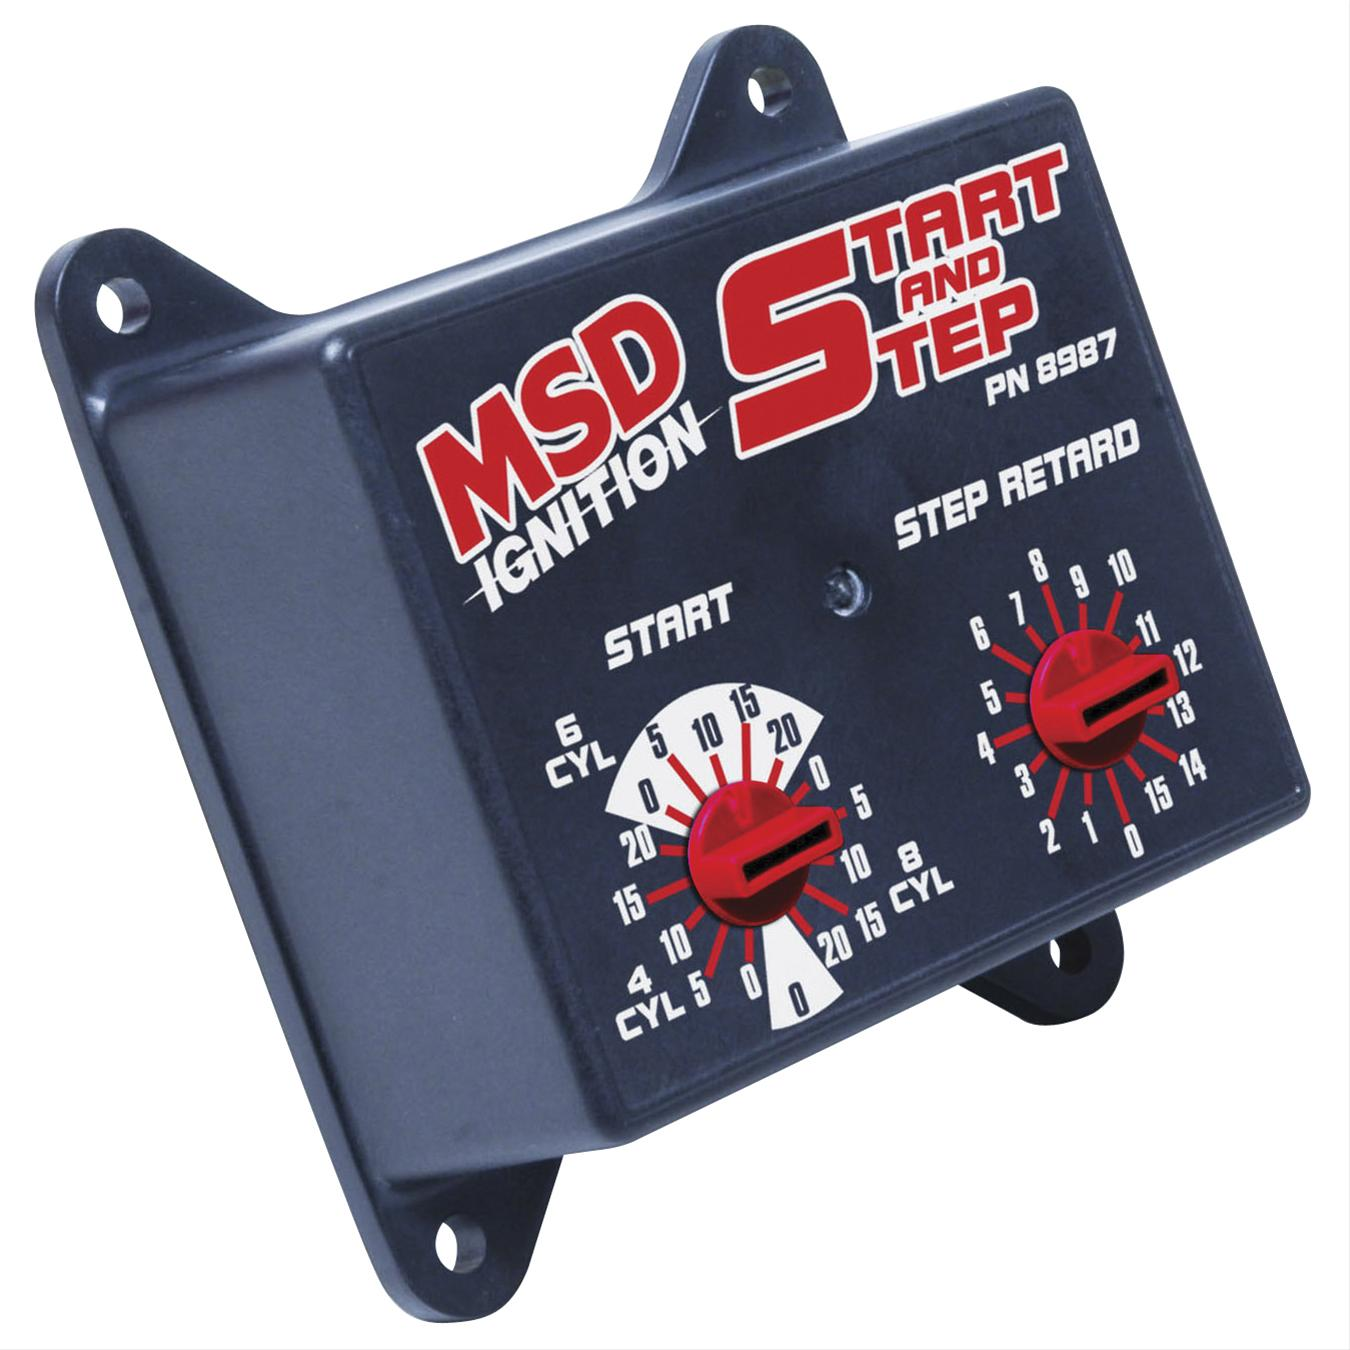 msd 8987_sn_xl msd start and step timing controls 8987 free shipping on orders 8760 MSD Timing Retard Box at crackthecode.co